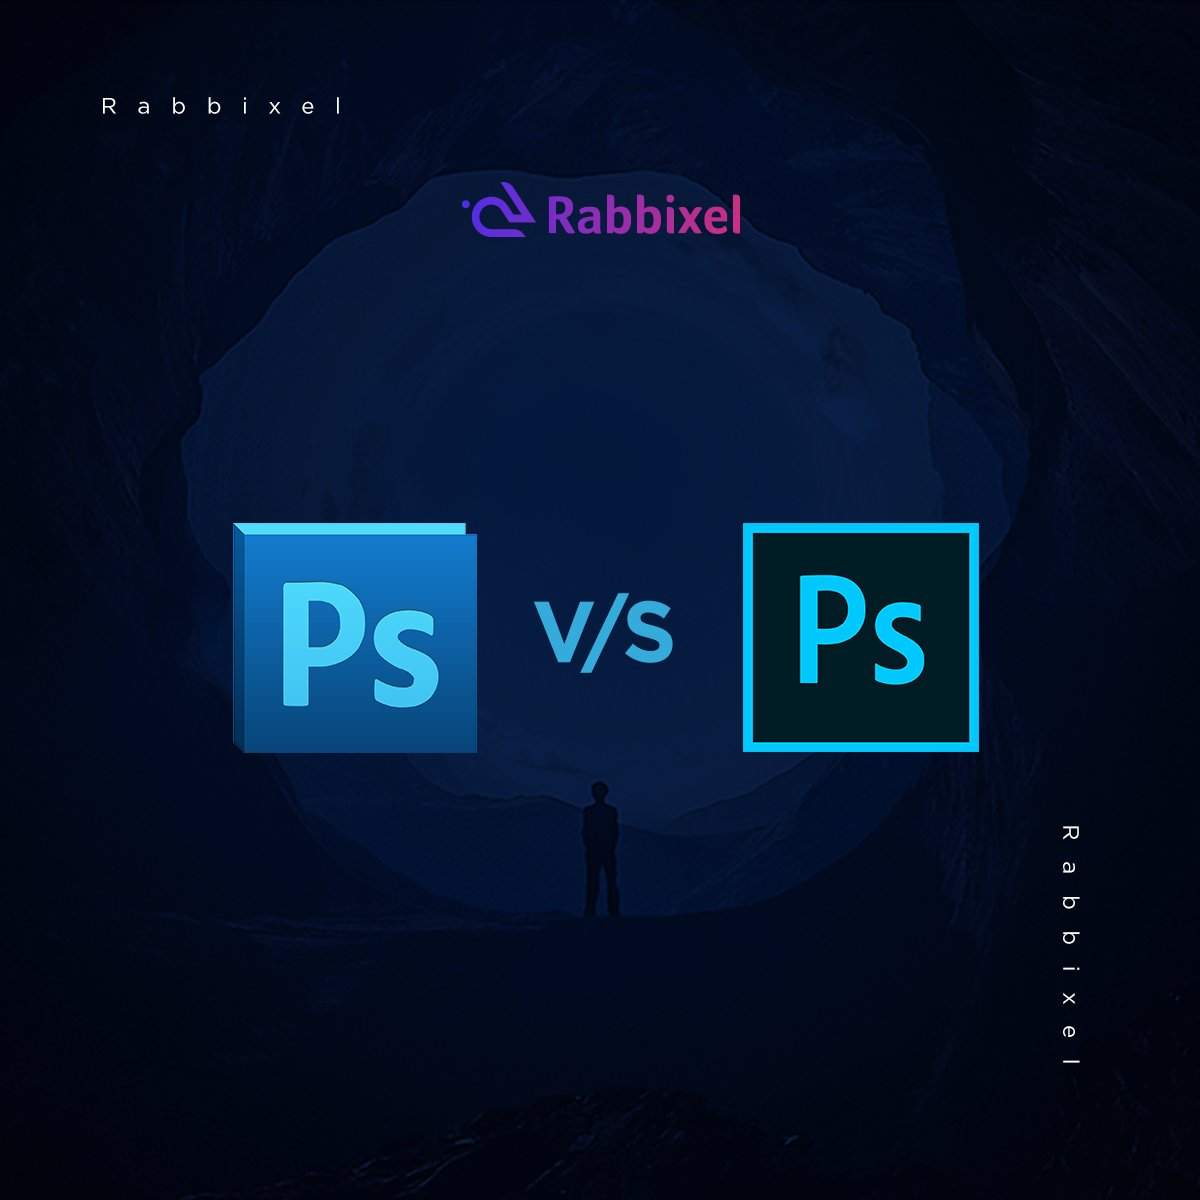 photoshop cc 2017 or cs6